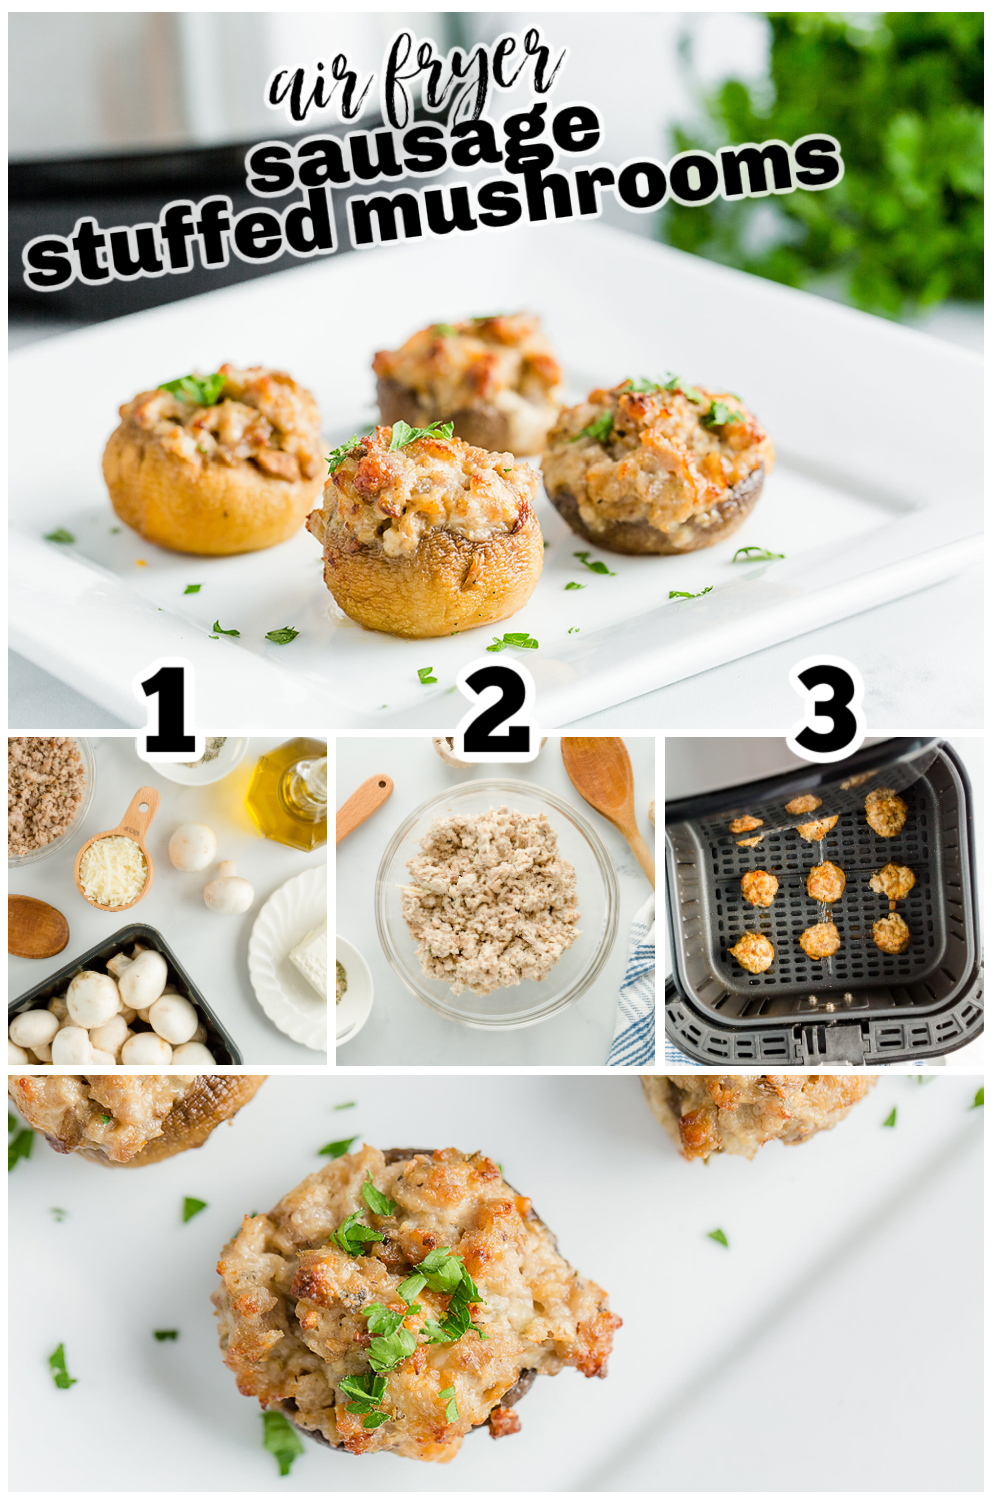 Making stuffed mushrooms is fairly foolproof with the air fryer.  Don't be afraid to try this easy recipe! #airfried #appetizers #recipes